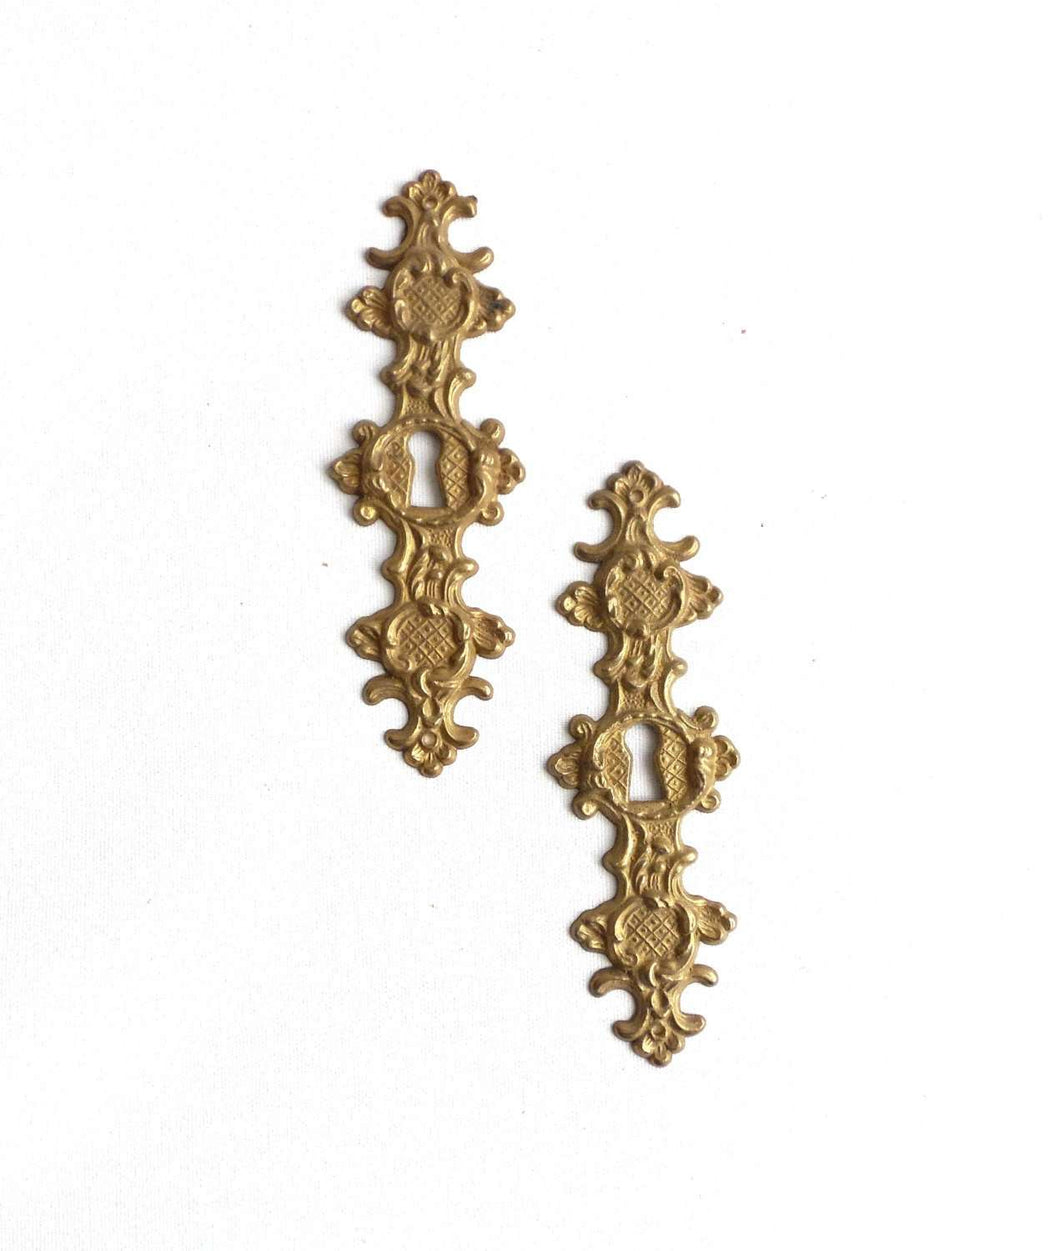 UpperDutch:Hooks and Hardware,Set of 2 Solid Brass Keyhole covers, escutcheons, keyhole frames, plates. Keyhole cabinet door covers ornate style hardware.